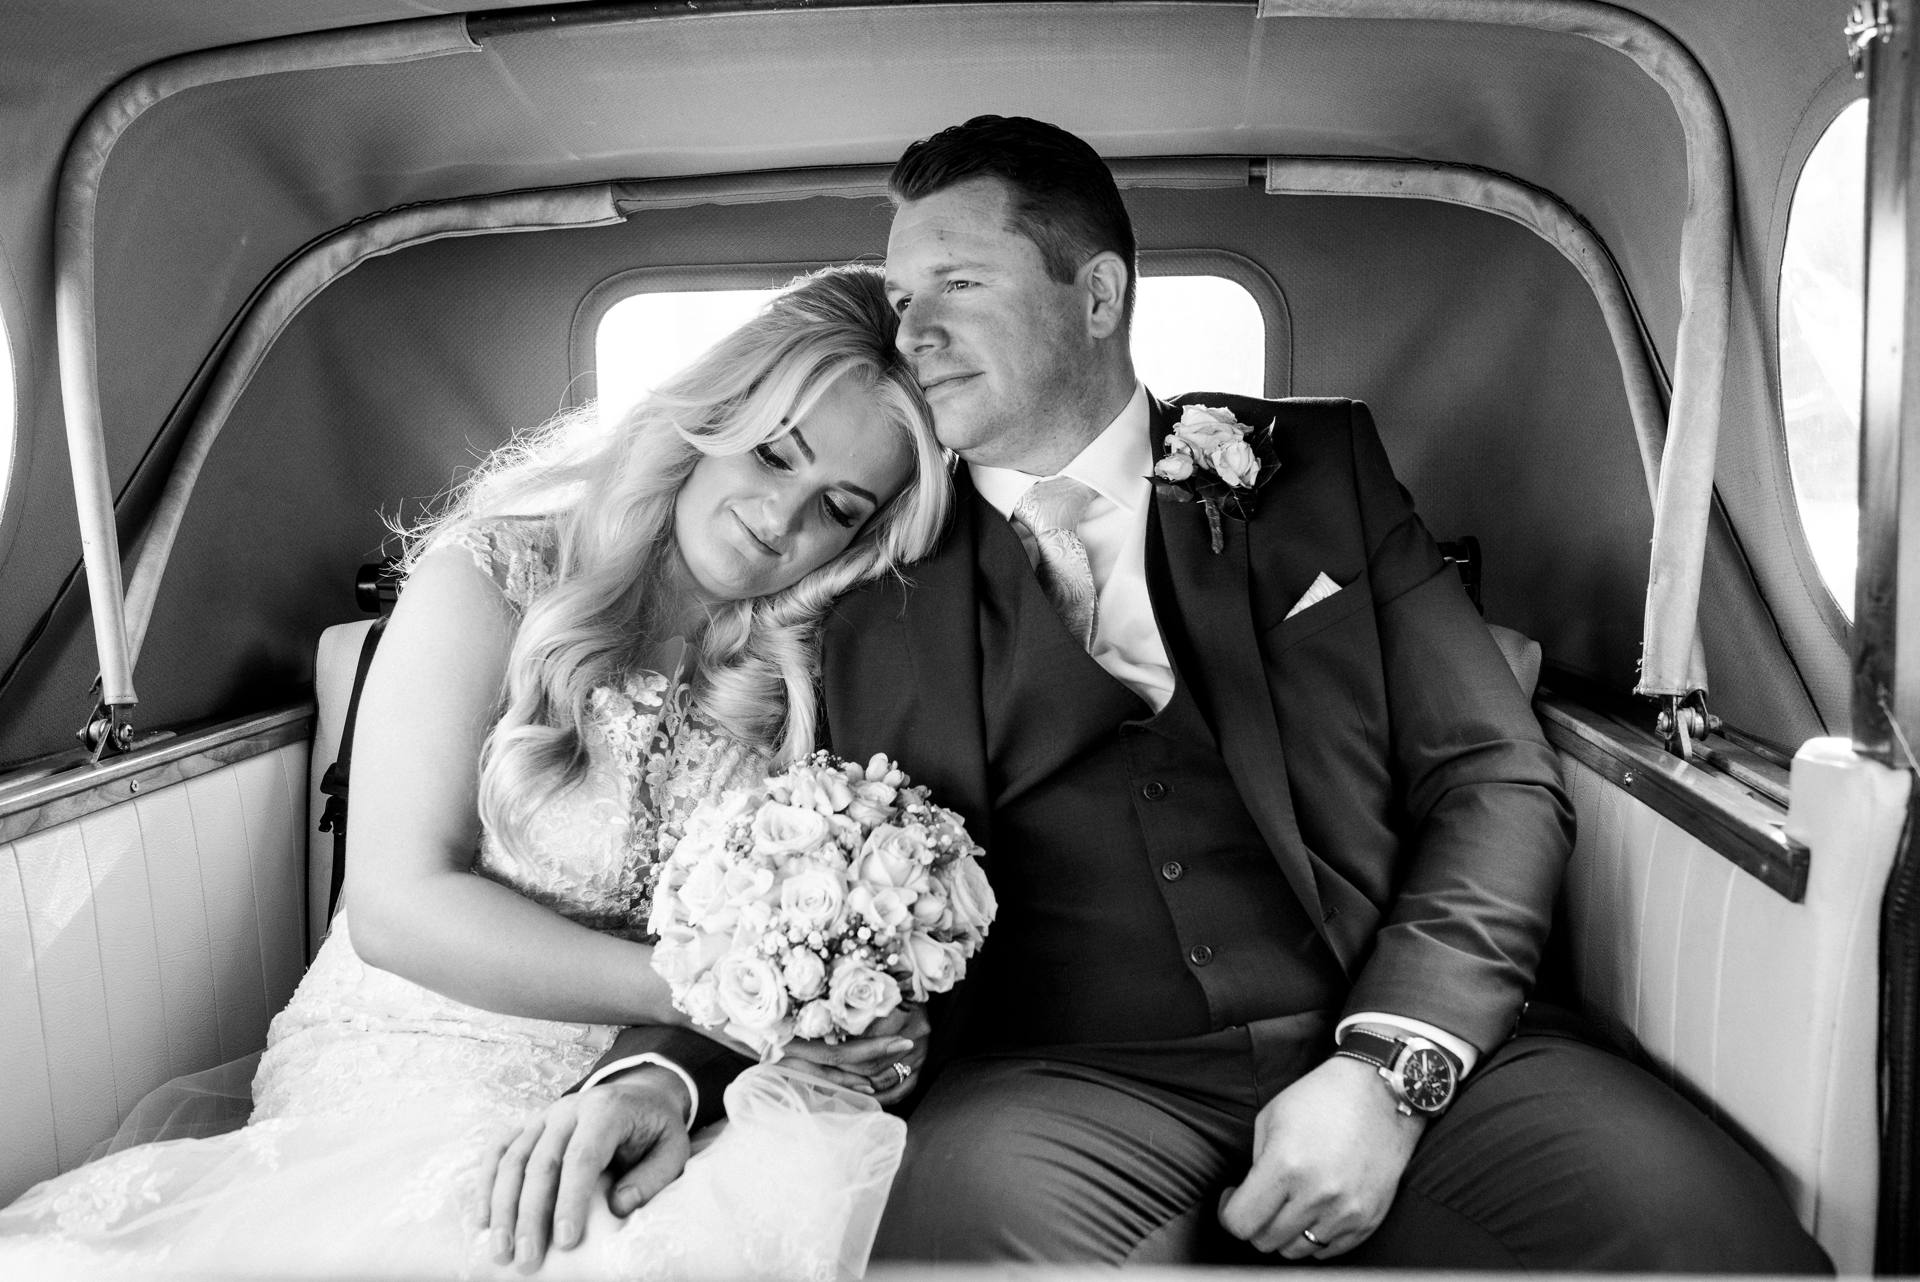 Bride and groom sitting together in the back of a car